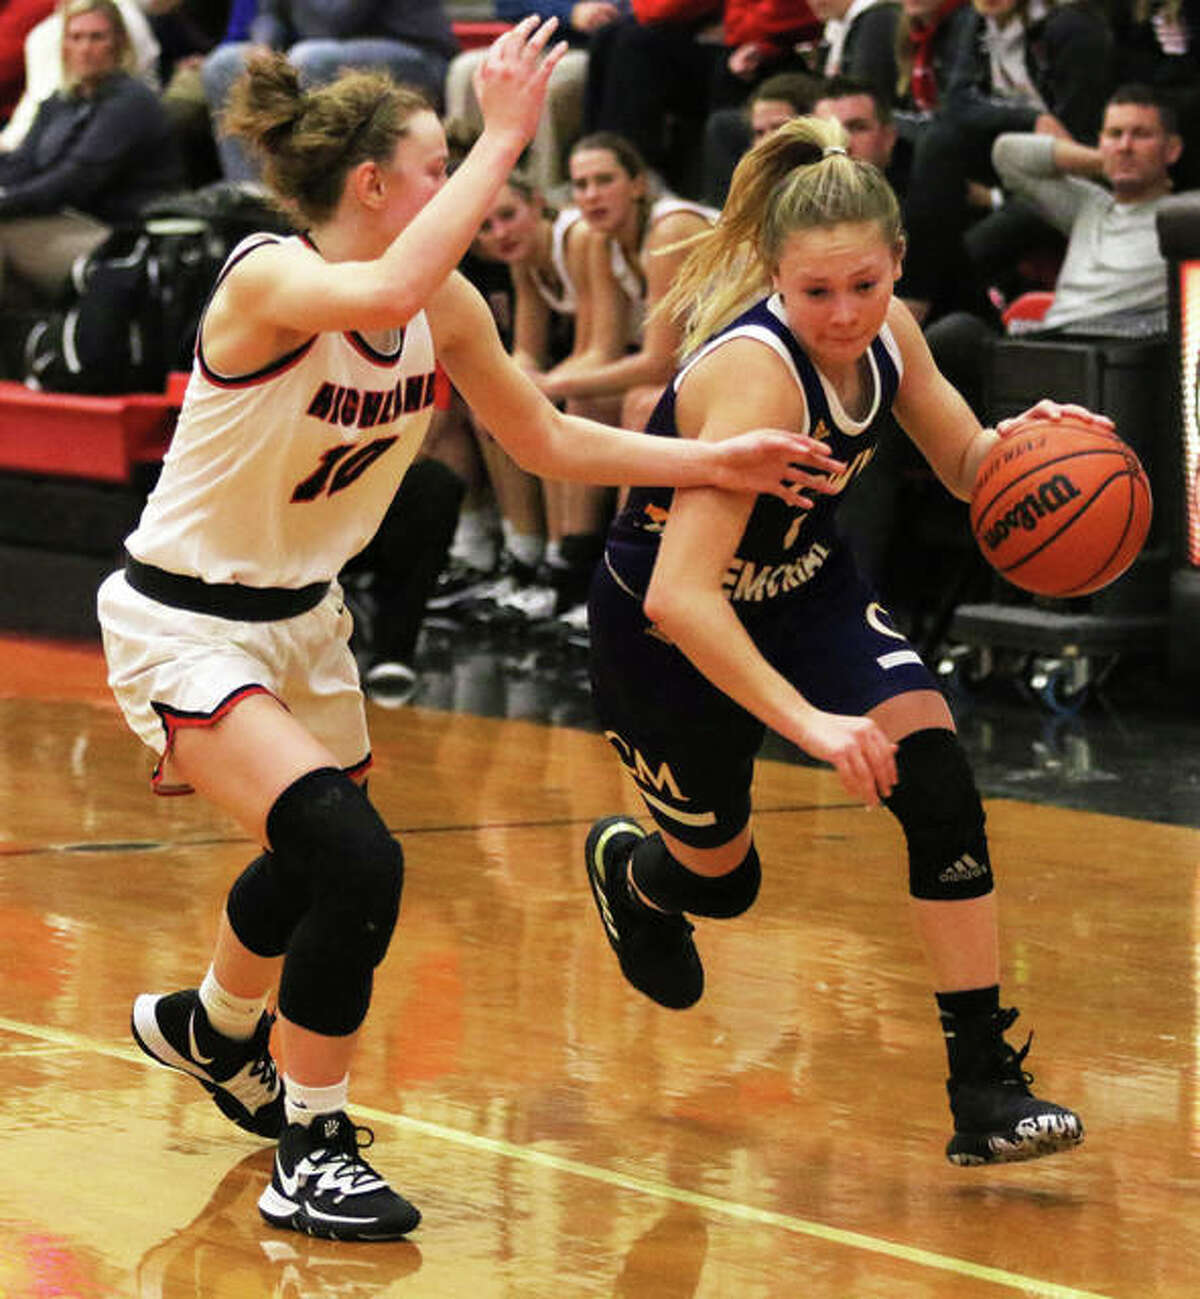 CM's Tori Standefer (right) drives on Highland's Kirsten Taylor during a Dec. 18 game in Highland. On Thursday at the State Farm Classic in Bloomington, Standefer matched her career high with 15 points in the unbeaten Eagles win over Normal West.